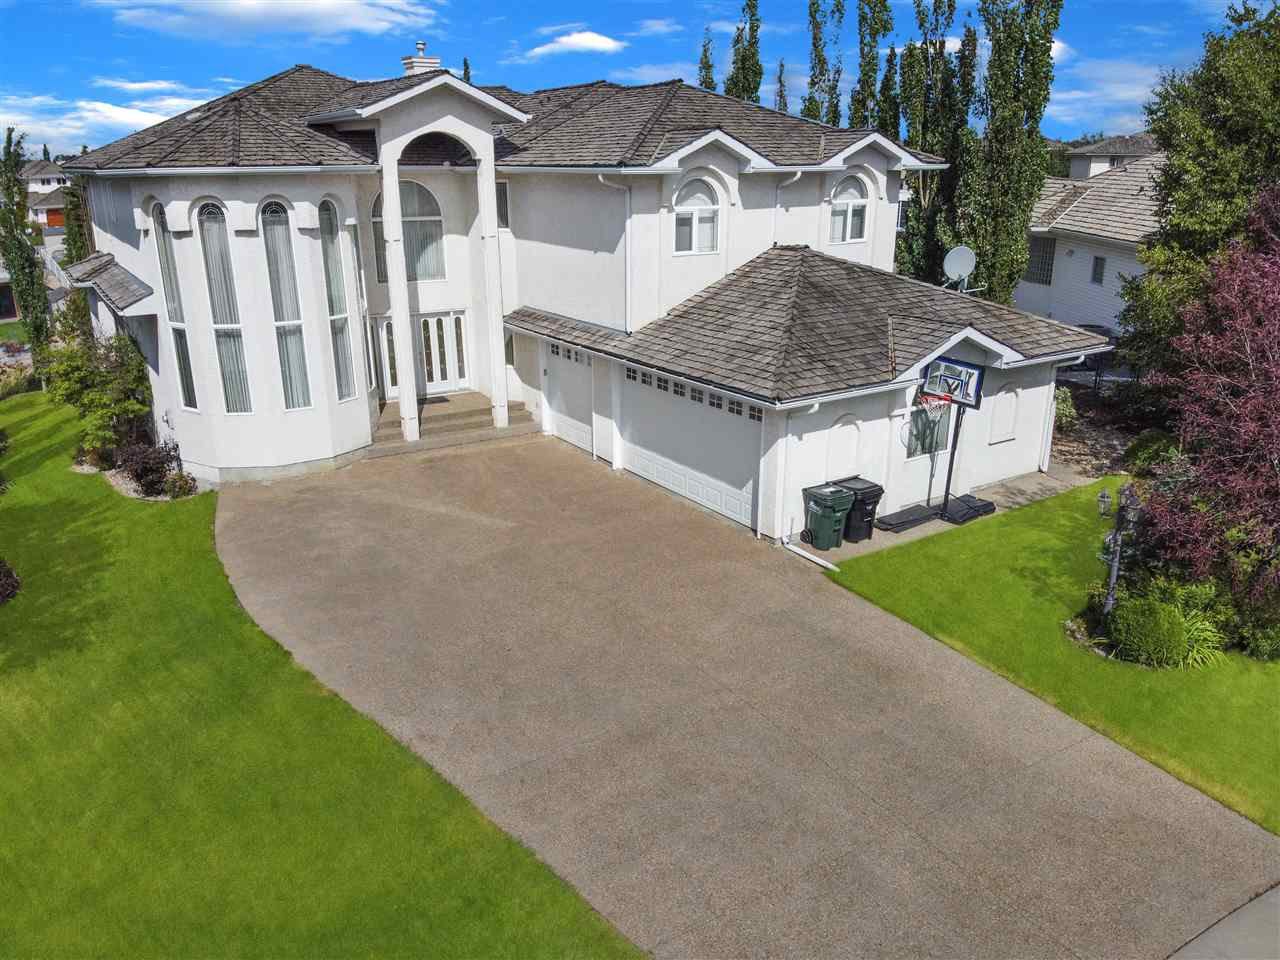 Main Photo: 179 52304 RGE RD 233: Rural Strathcona County House for sale : MLS®# E4211086